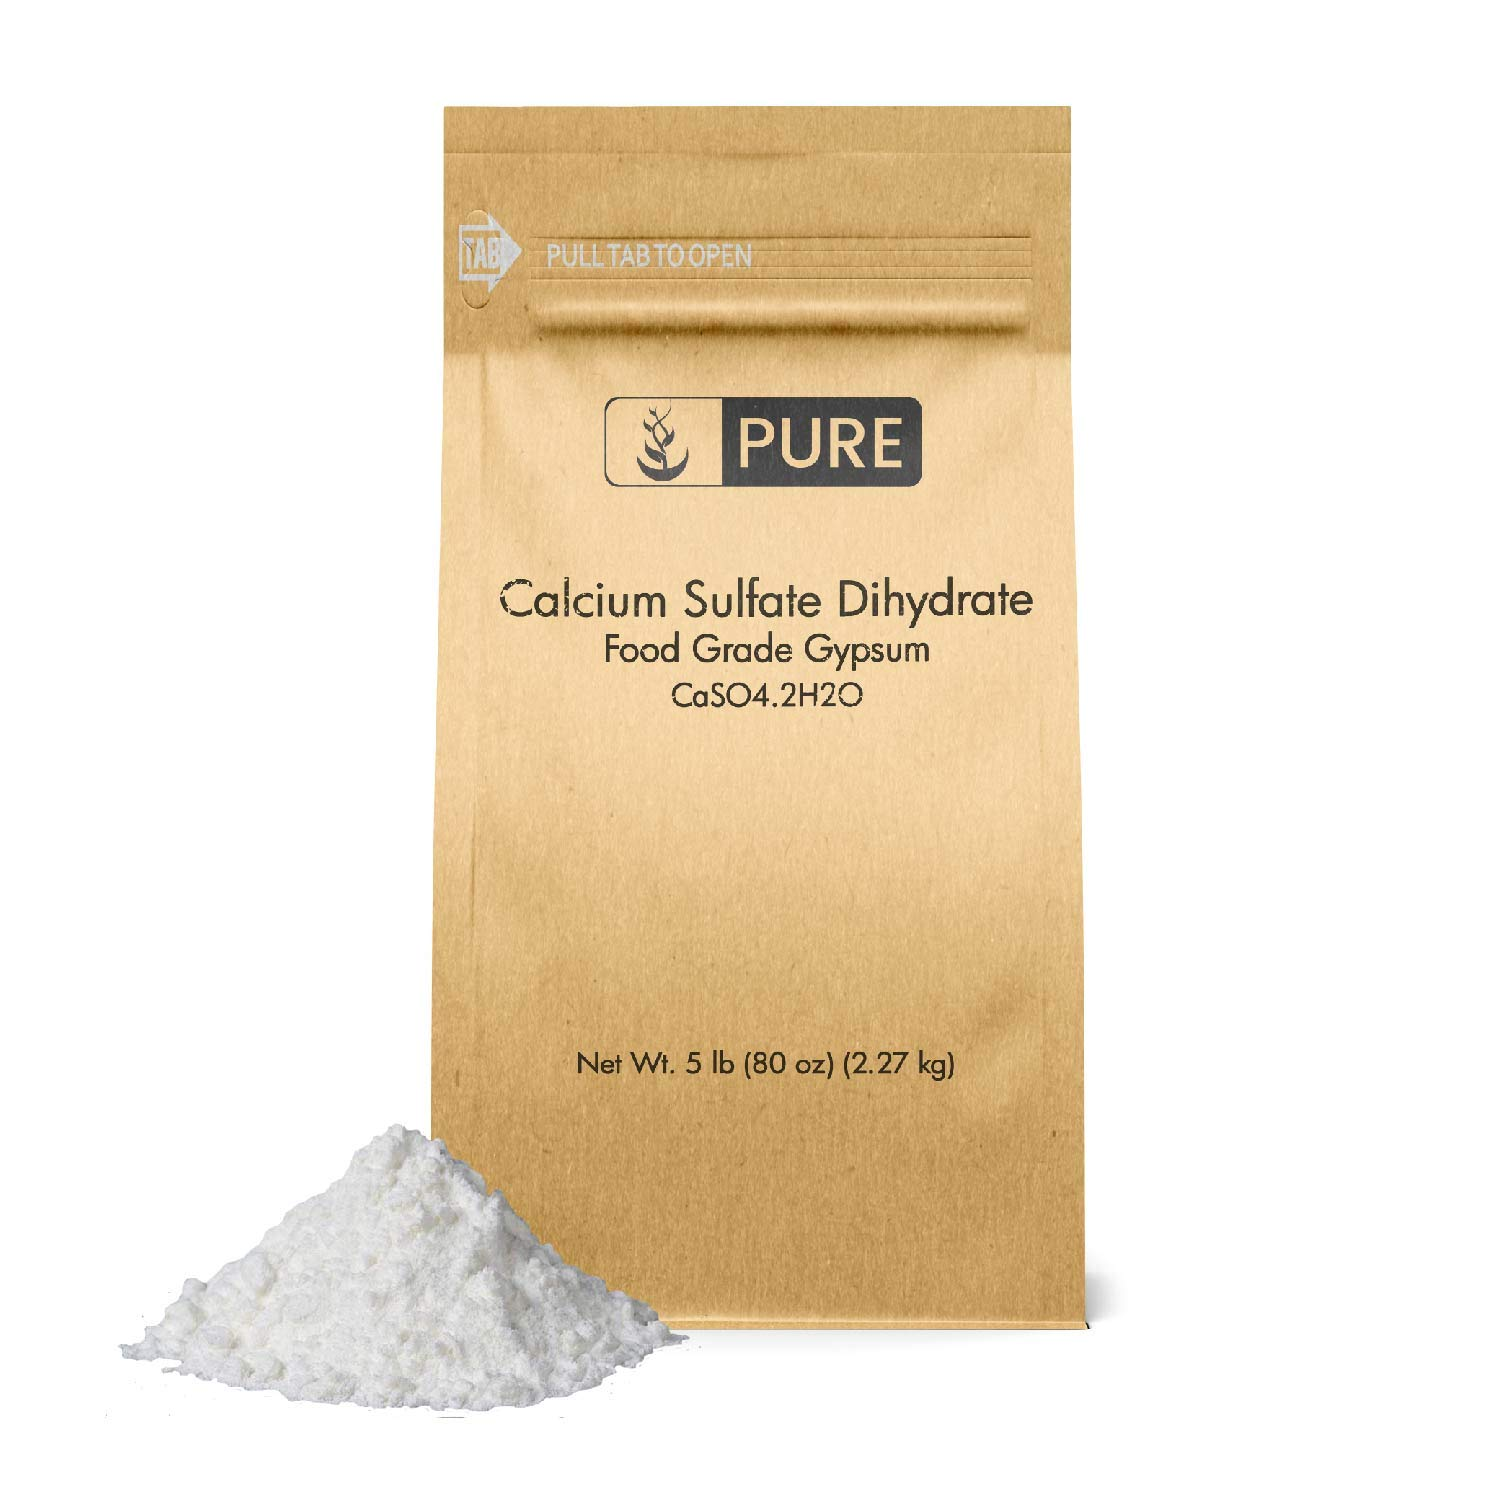 Calcium Sulfate (Gypsum) (5 lb.) by Pure Ingredients, Eco-Friendly Packaging, for Multiple Uses Including Baking, Water Treatment, and Gardening